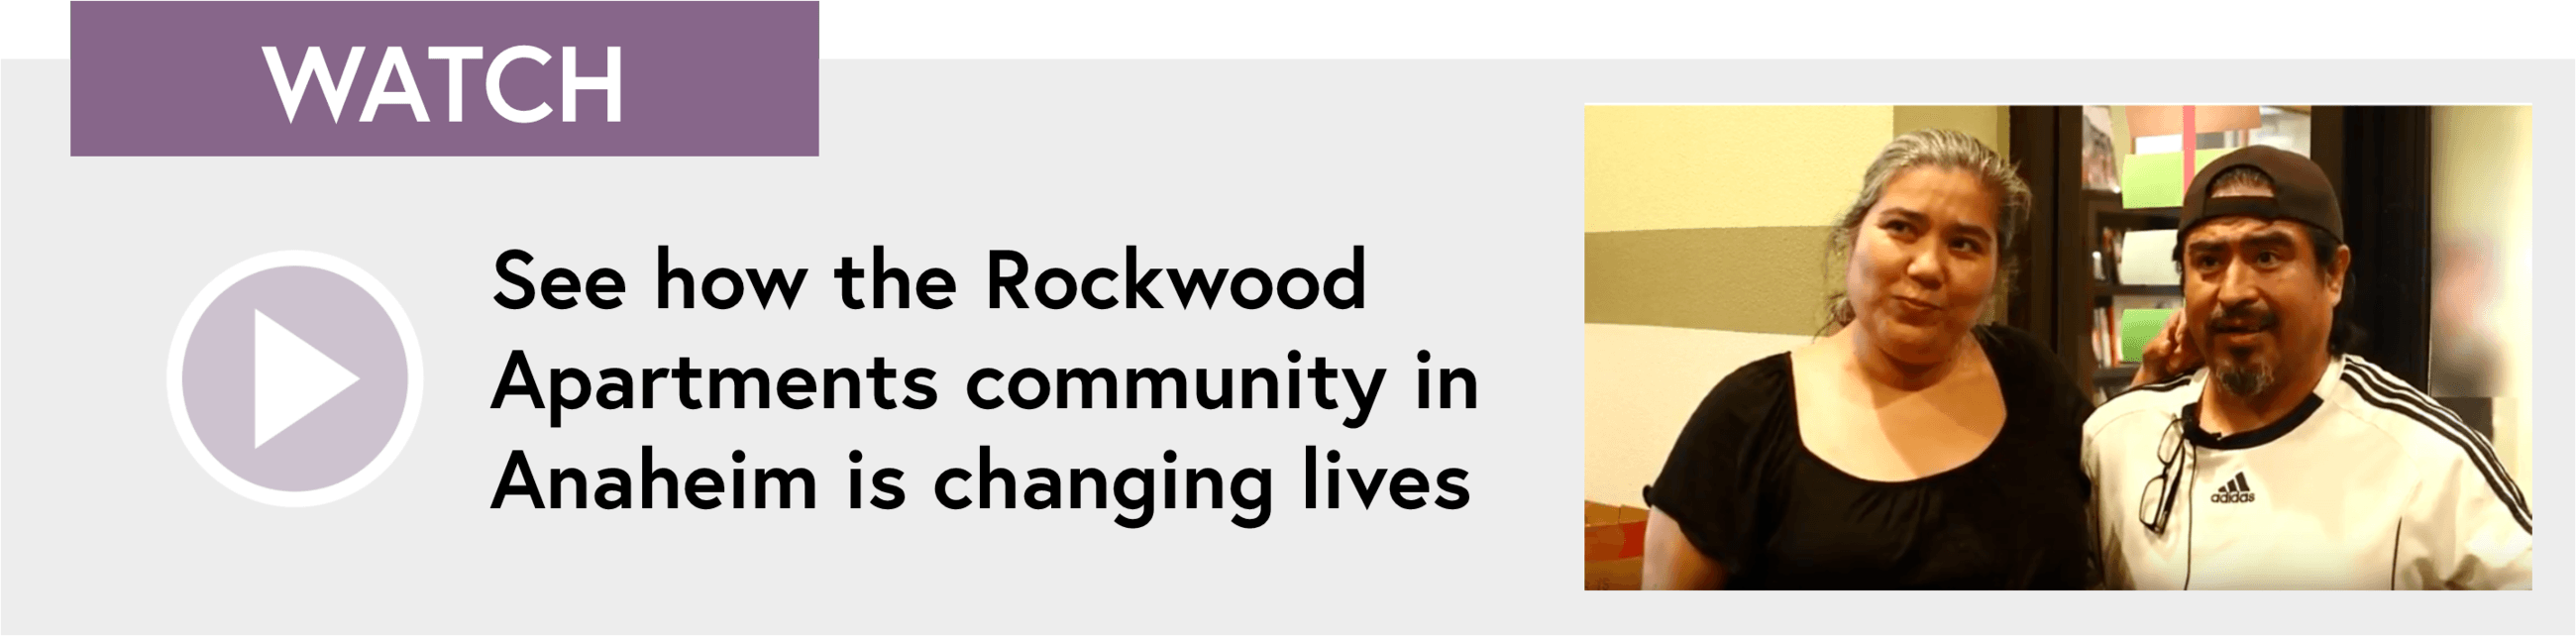 Watch Rockwood